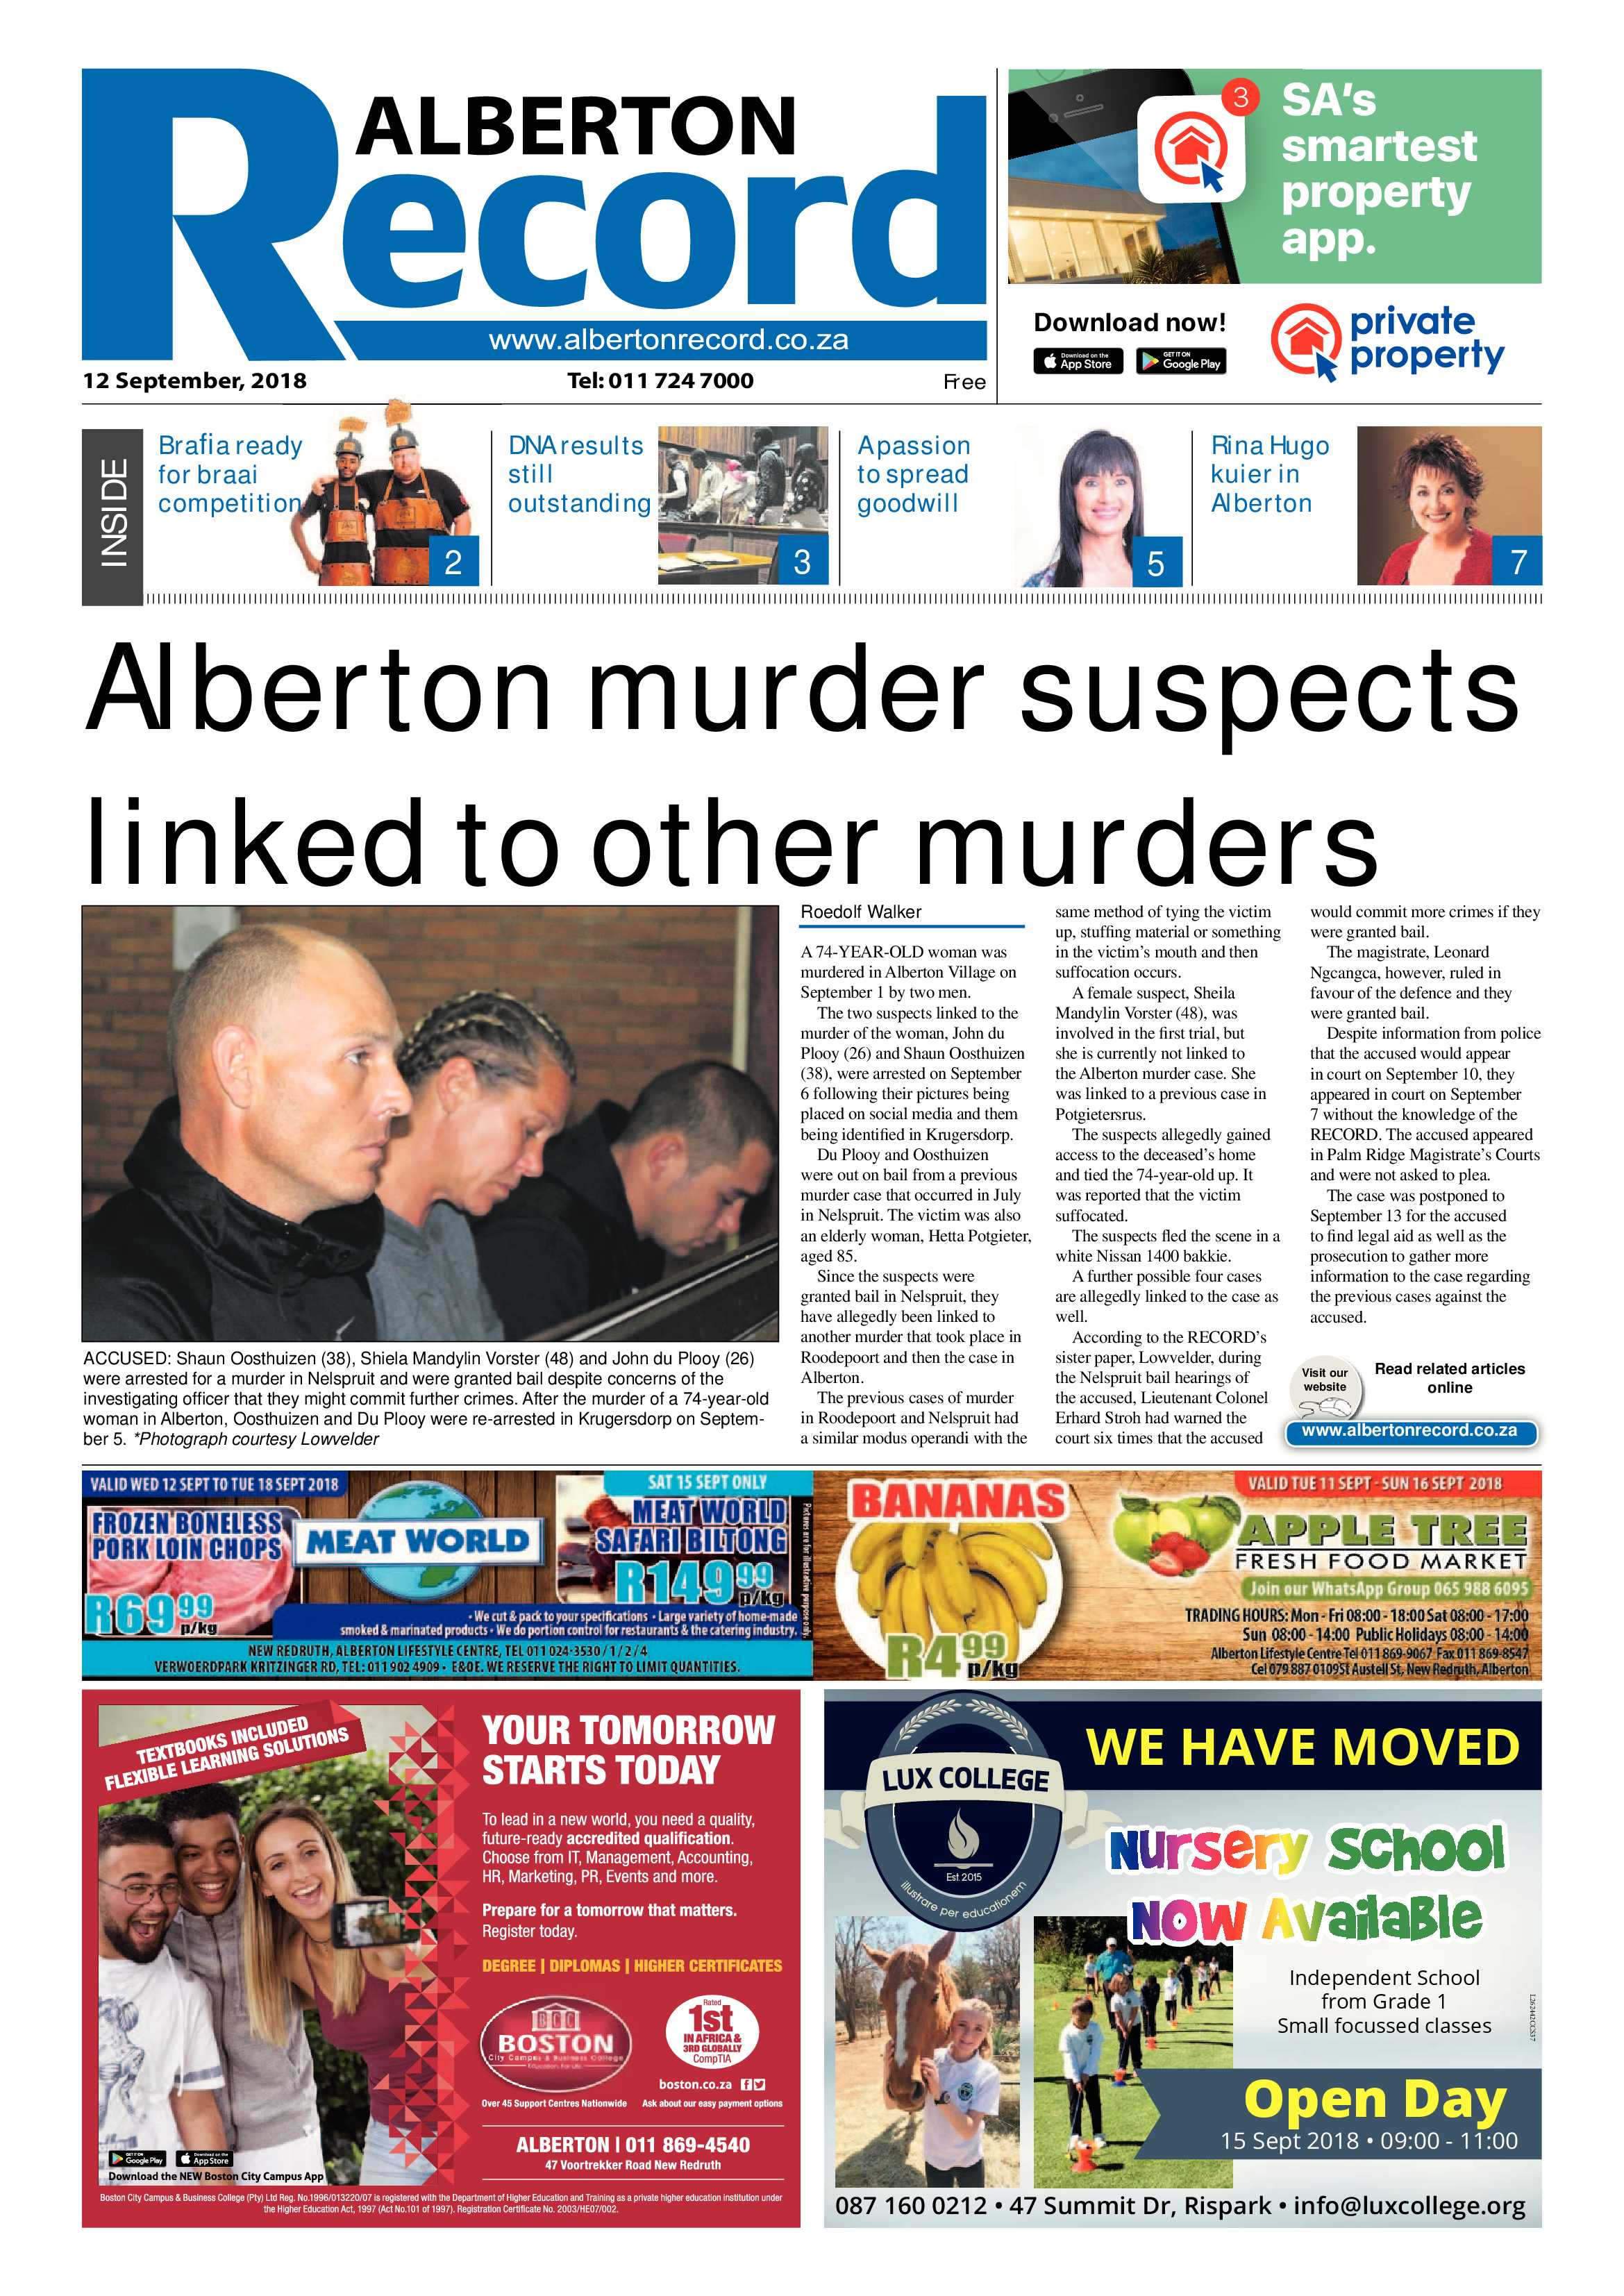 alberton-record-12-september-2018-epapers-page-1